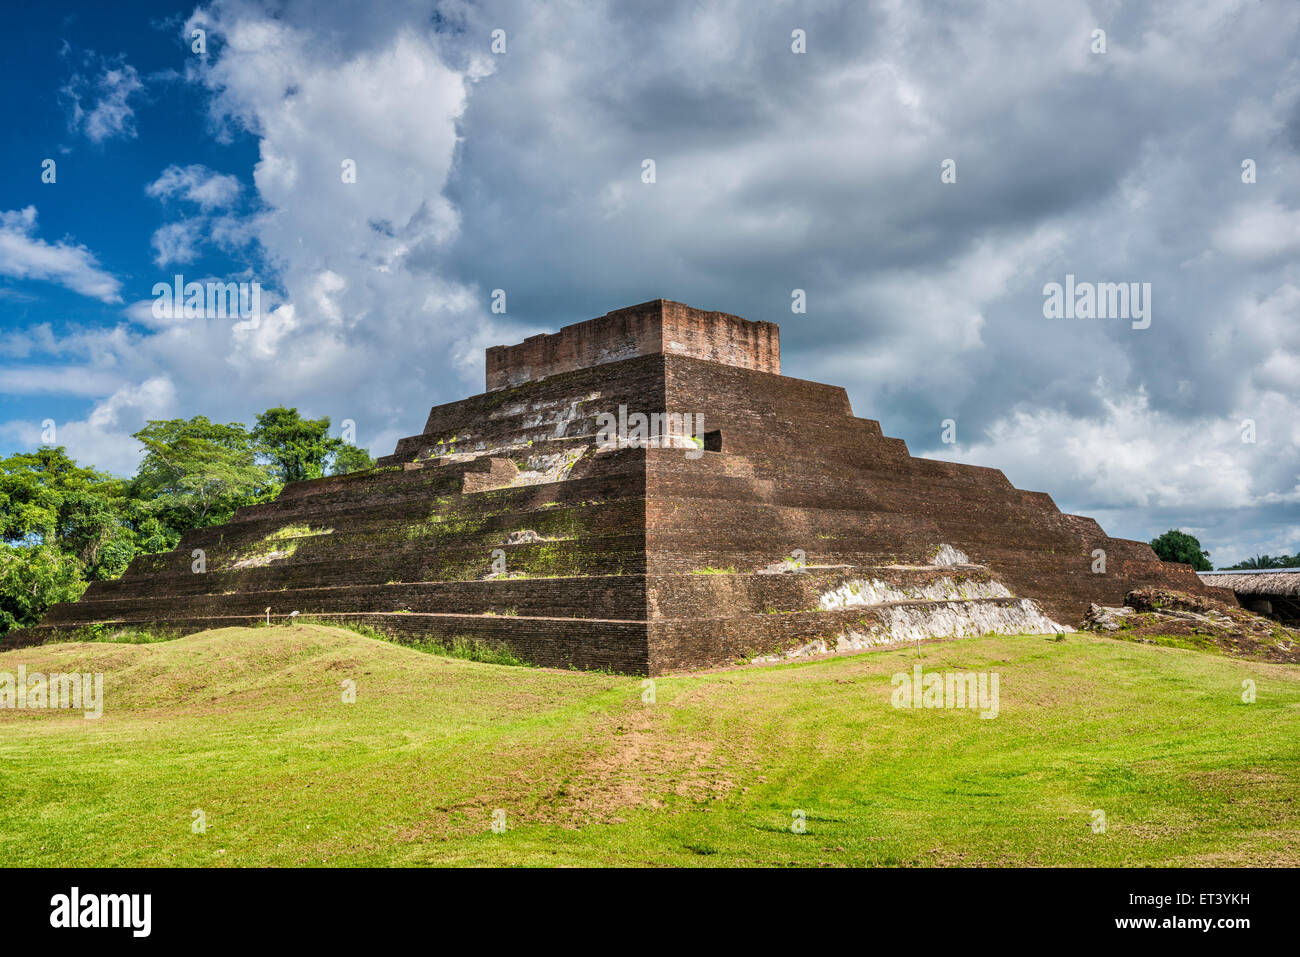 Templo I, Maya ruins at Comalcalco archaeological site, Tabasco state, Mexico - Stock Image